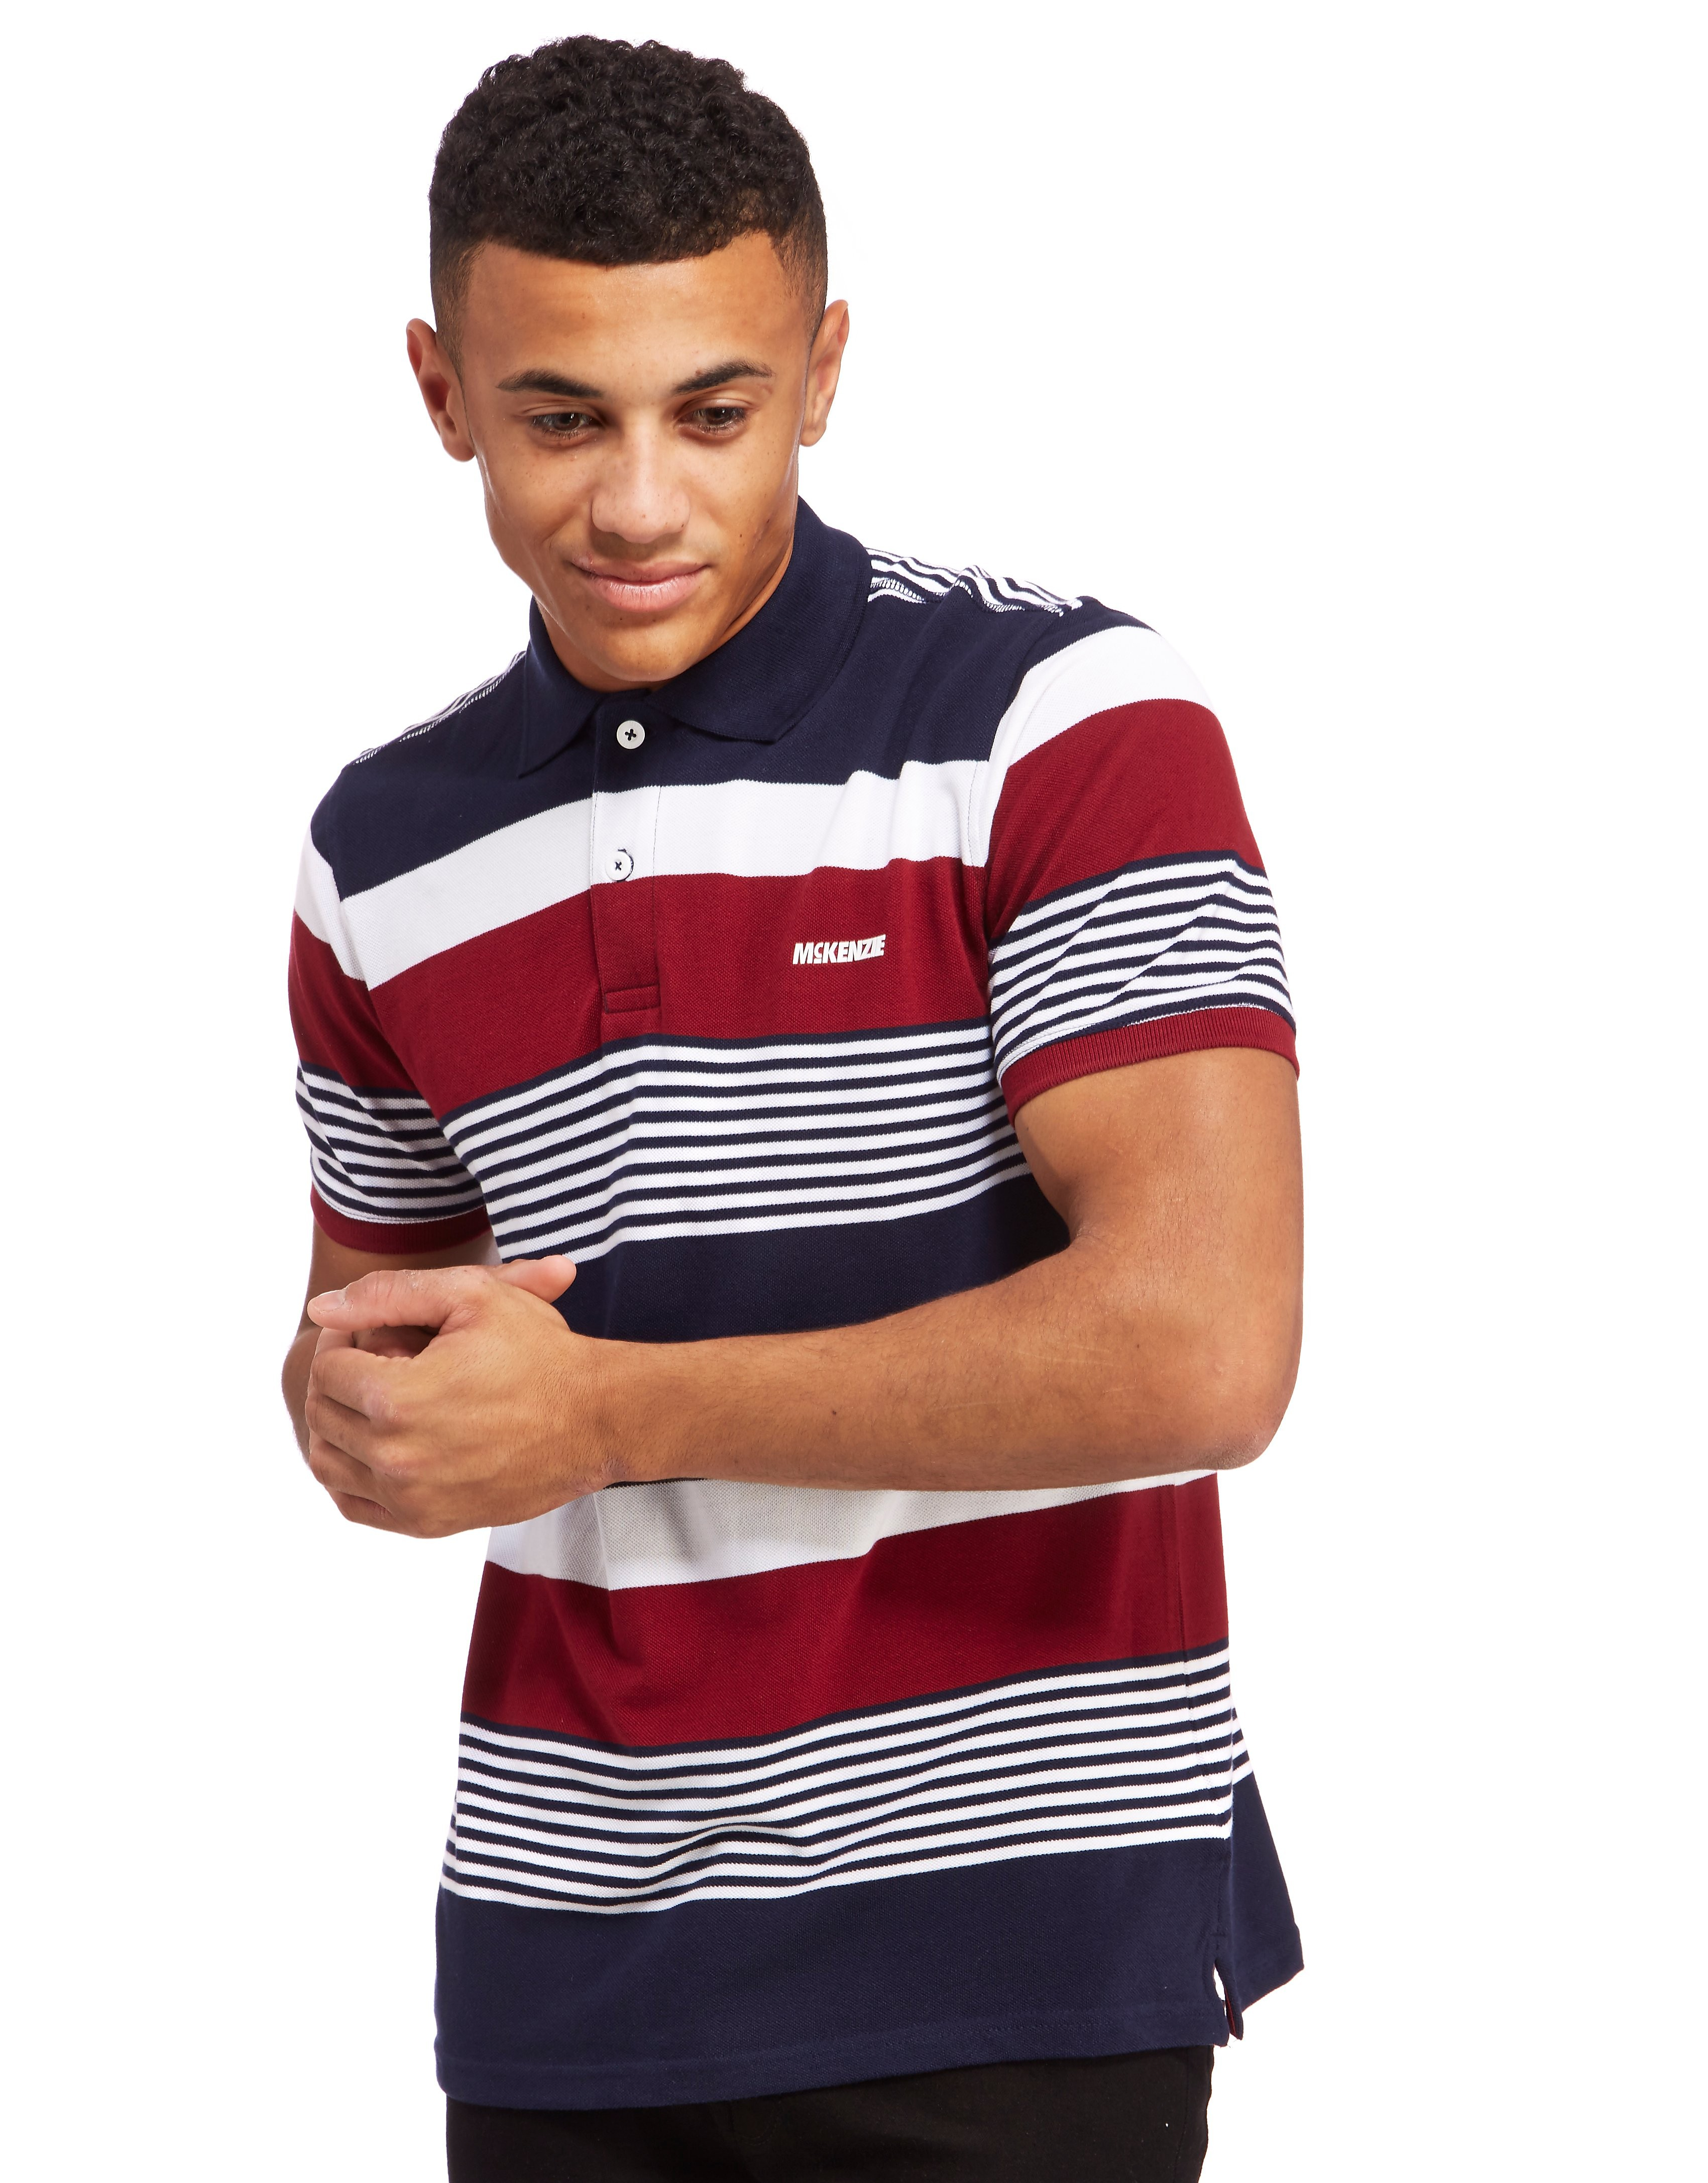 McKenzie Madrona Polo Shirt